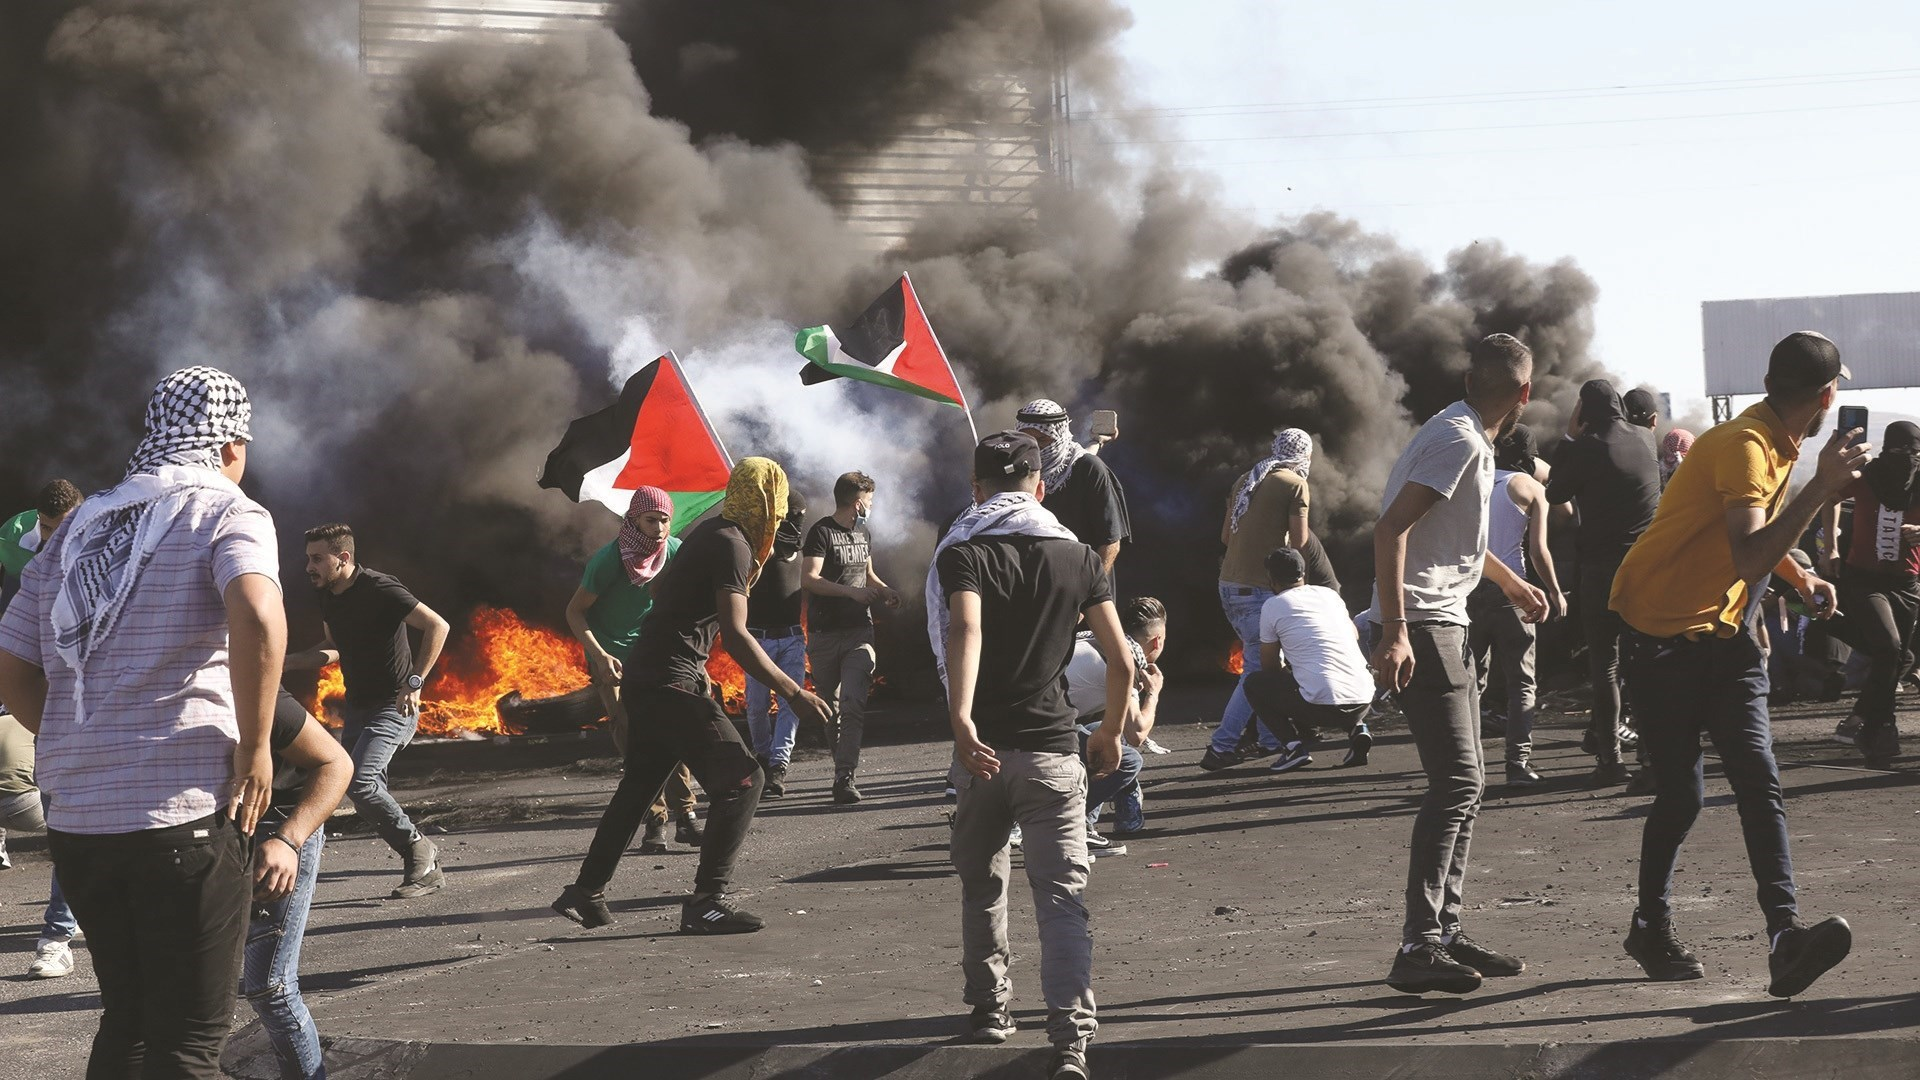 Around 40 Palestinians were wounded as a result of the clashes